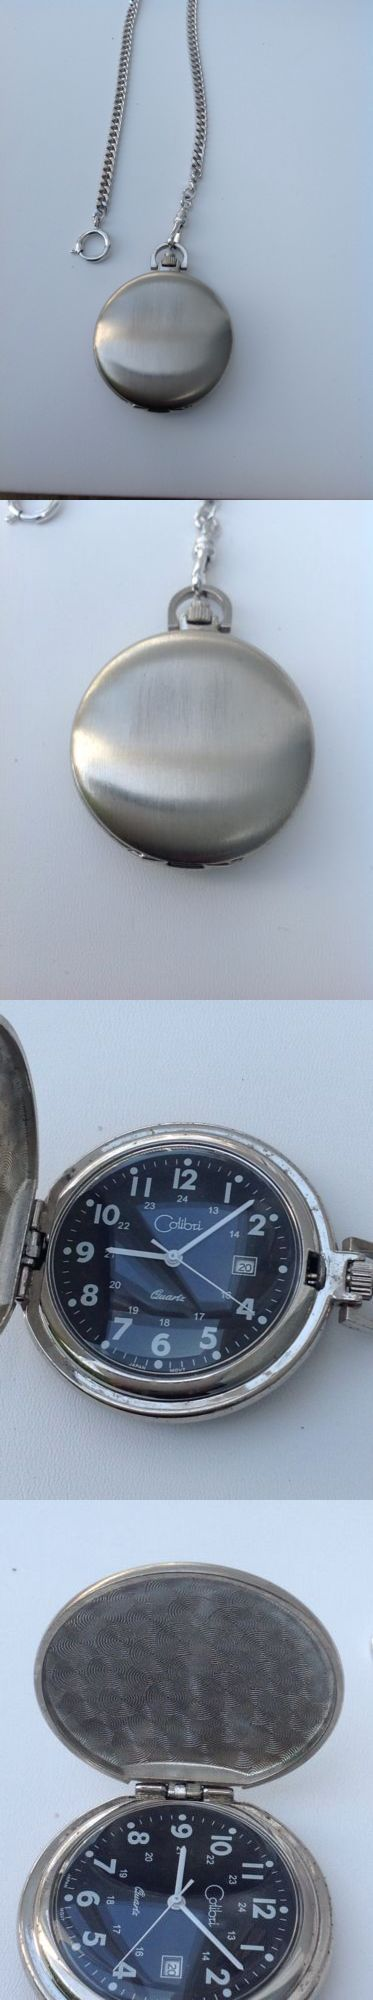 Modern 3938: Colibri Pocket Watch With Black Face And White Numbs -> BUY IT NOW ONLY: $54 on eBay!